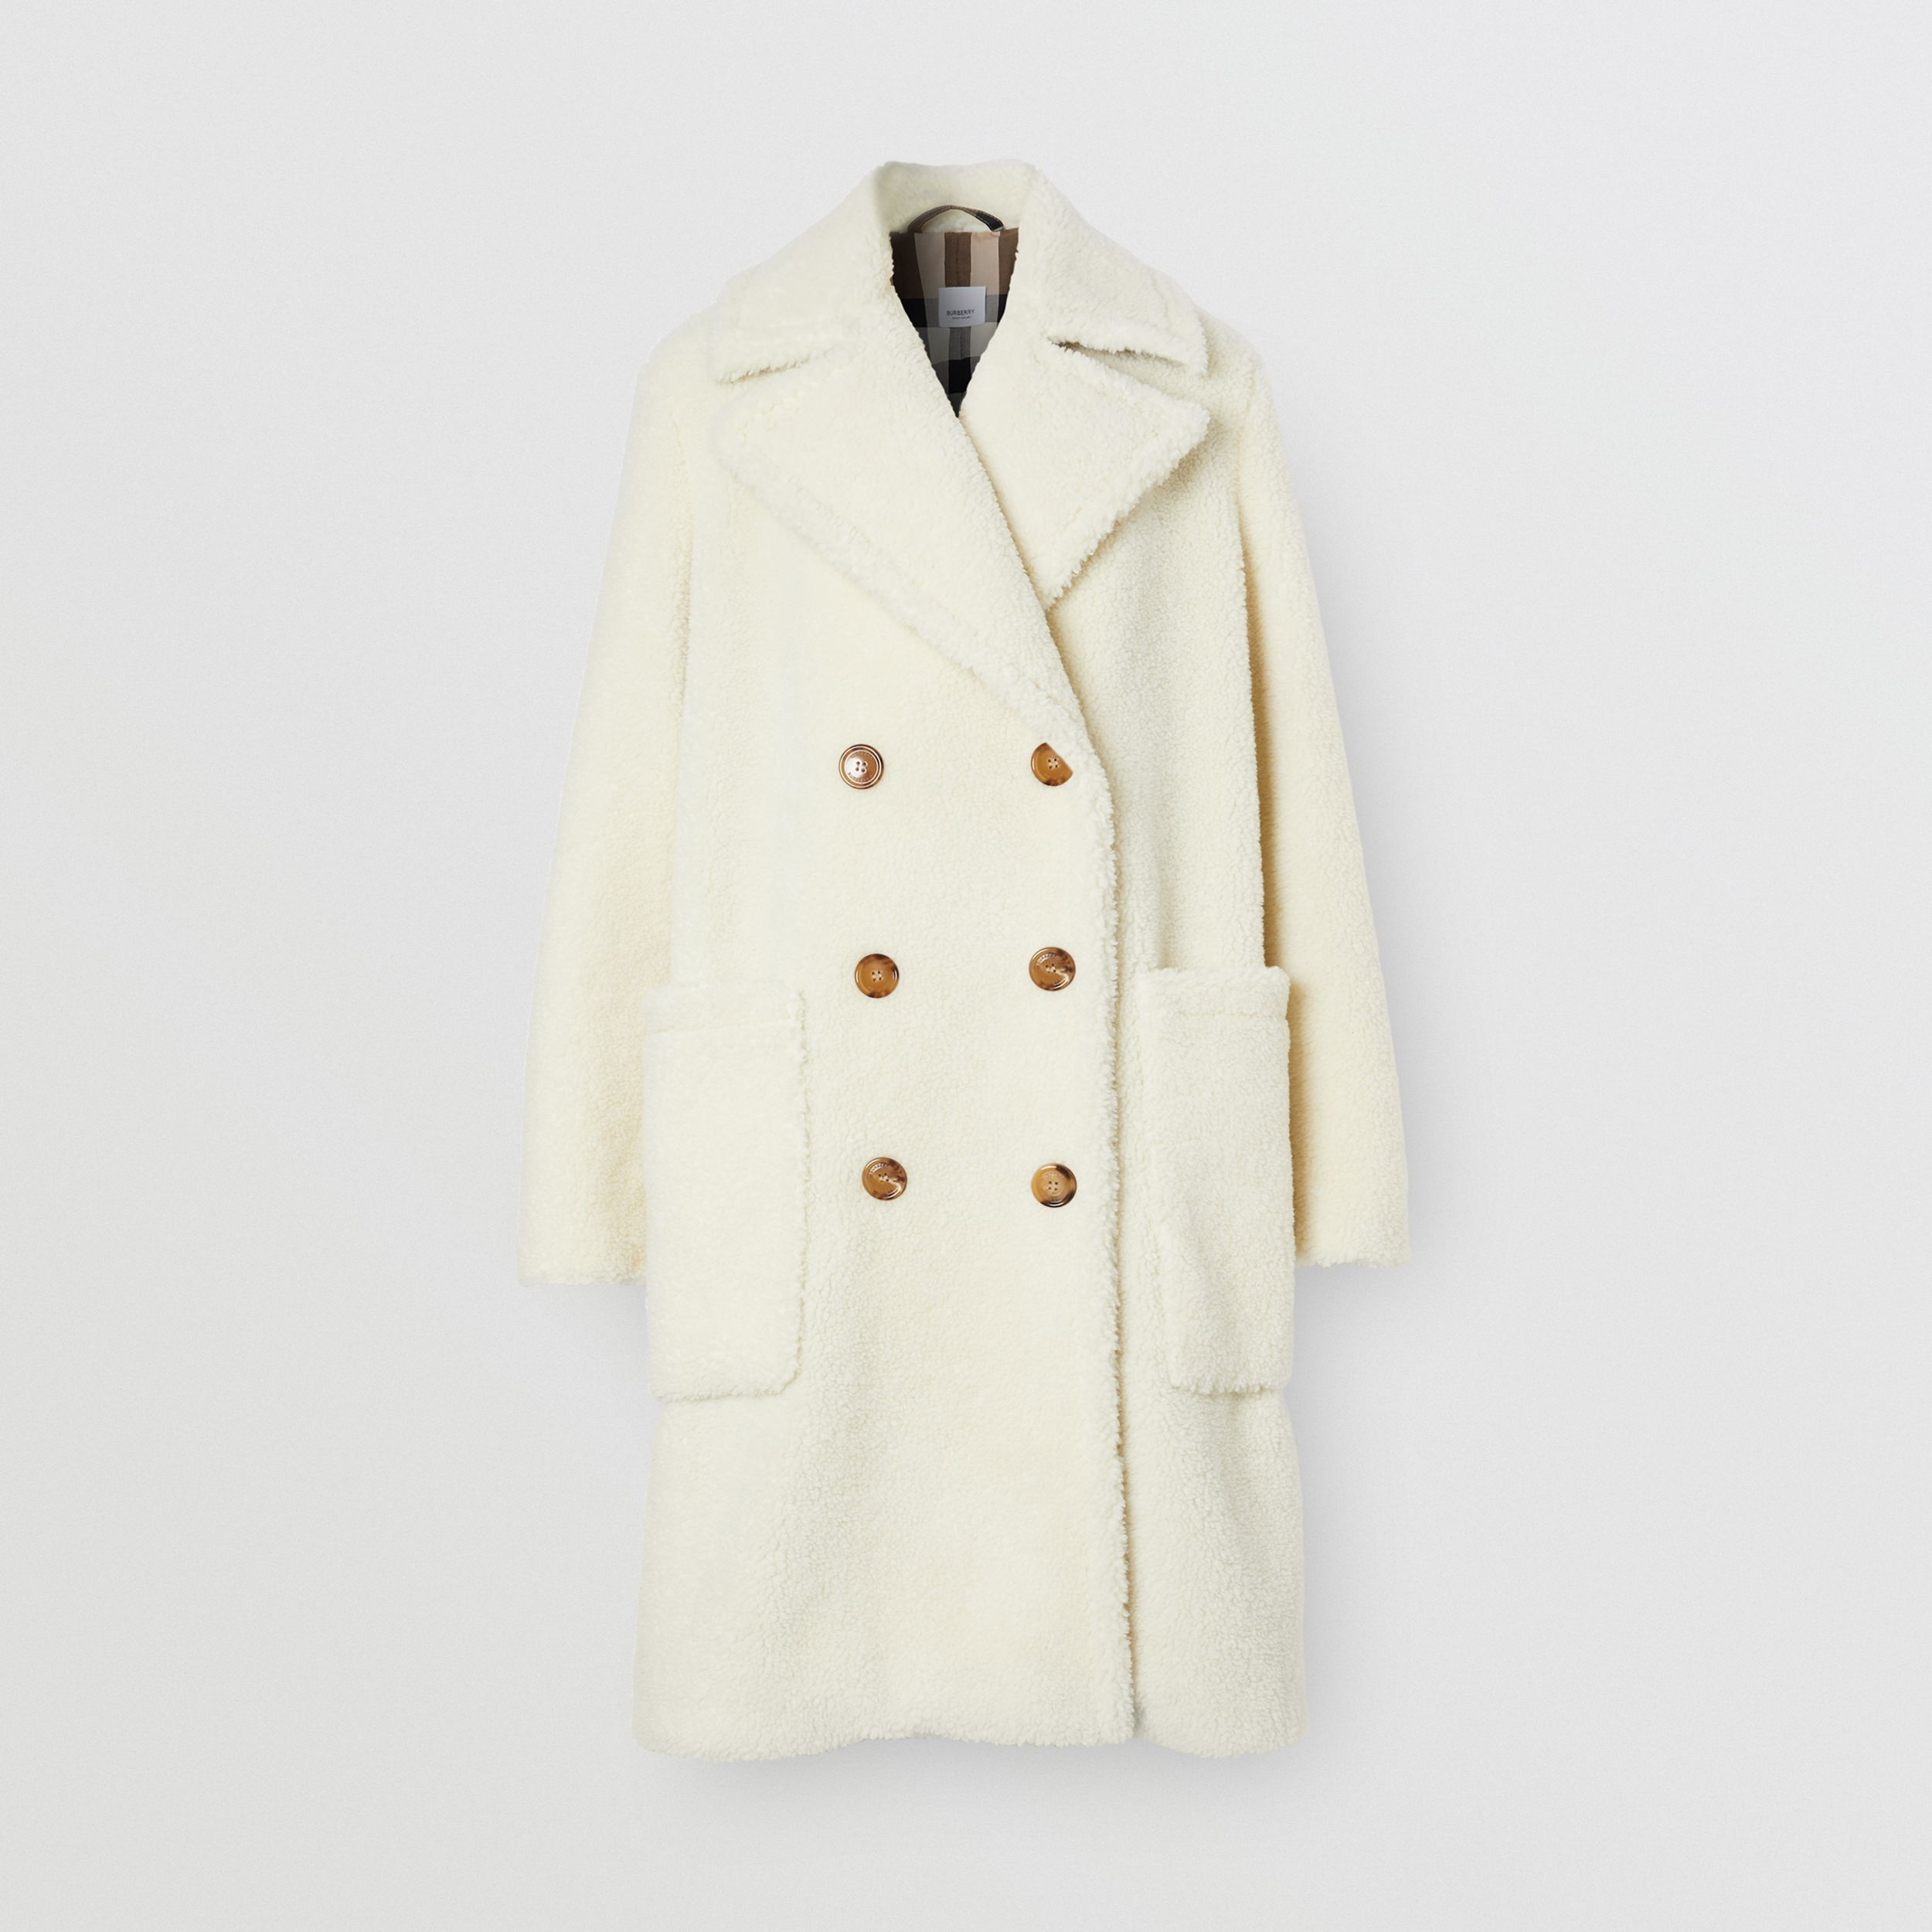 Technical Wool Fleece Double-breasted Coat in Ivory - Women | Burberry United States - 4